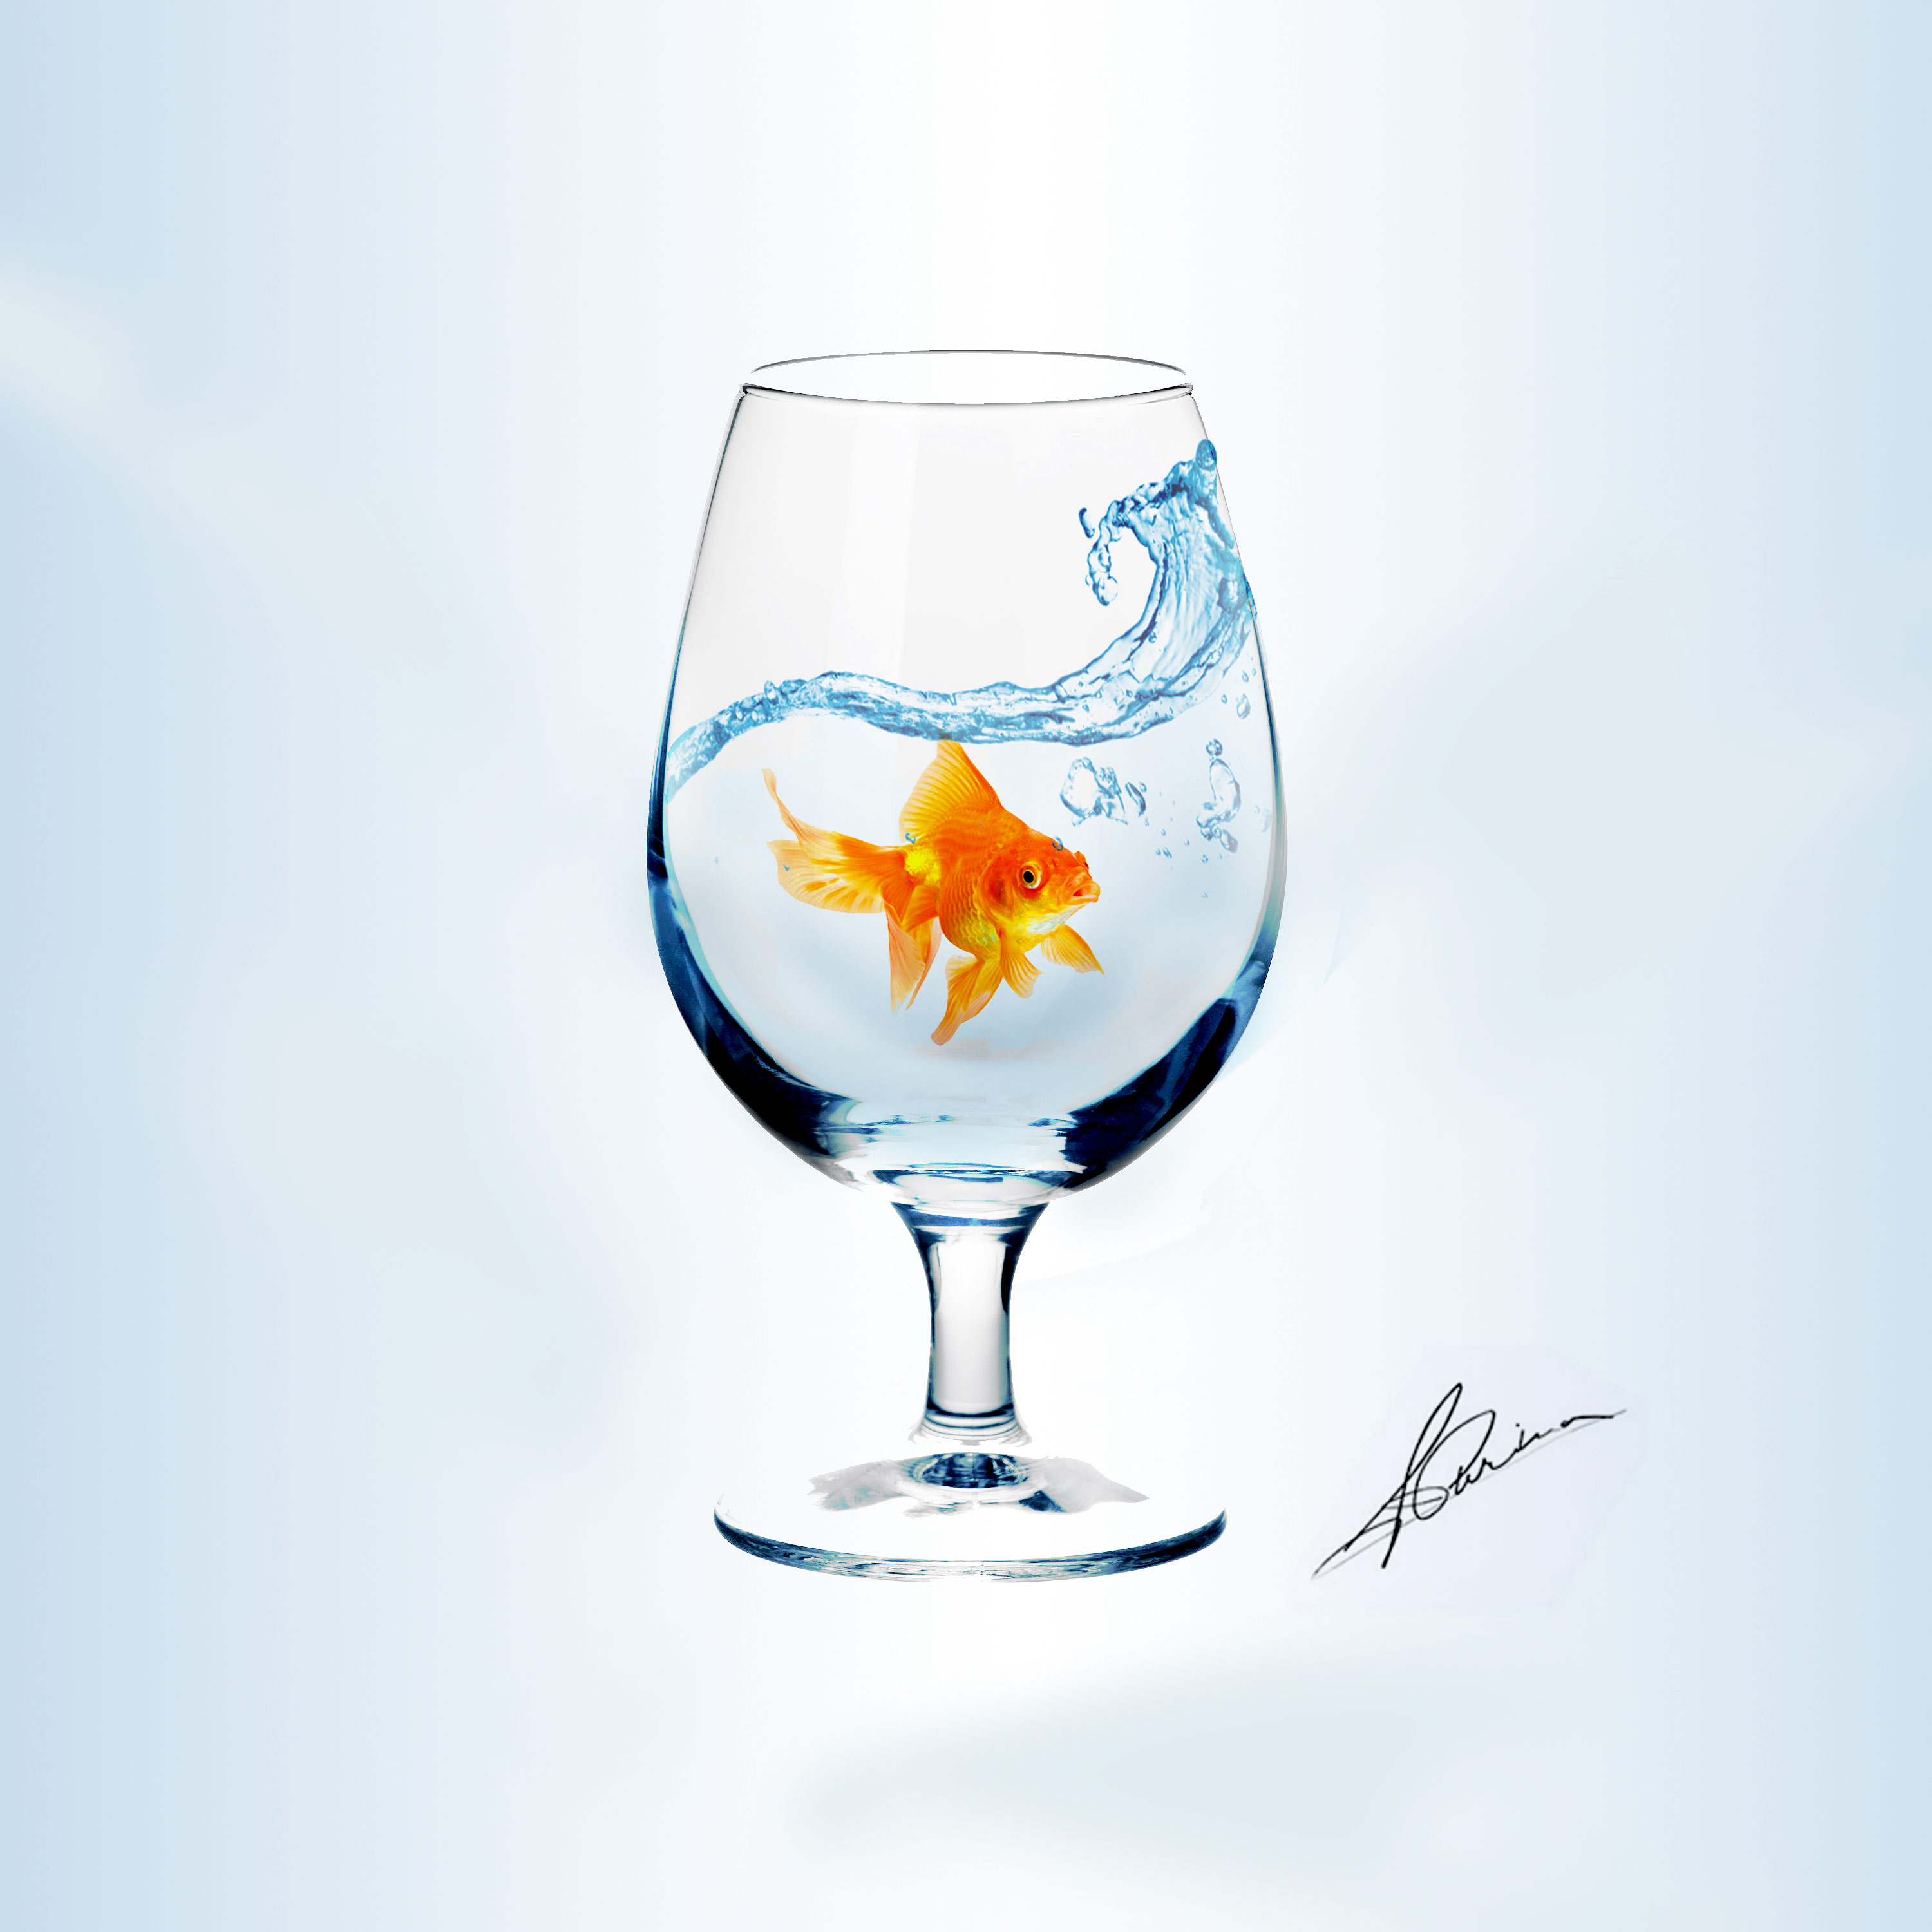 gold-fish-and-glass